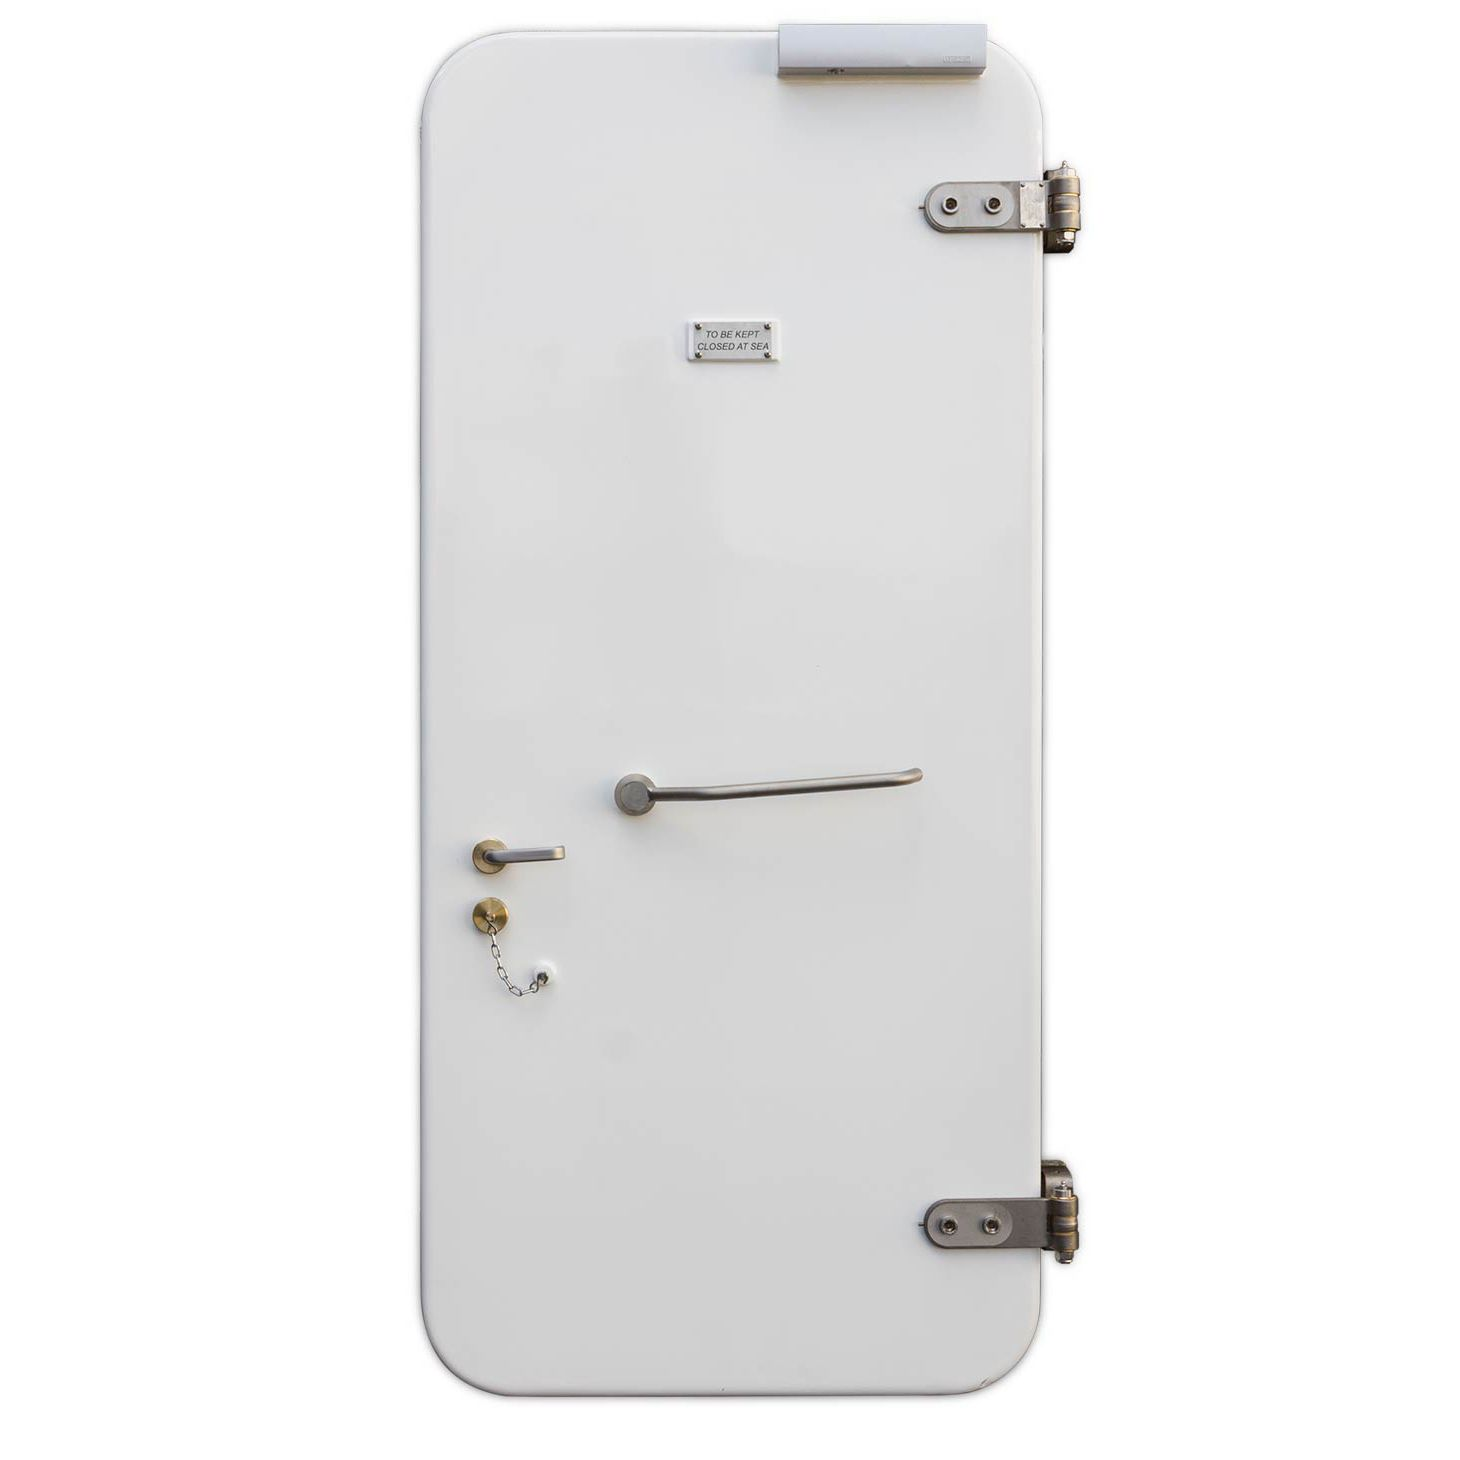 ship door / waterproof / double / stainless steel - BOH.0245  sc 1 st  NauticExpo & Ship door / waterproof / double / stainless steel - BOH.0245 - Bohamet